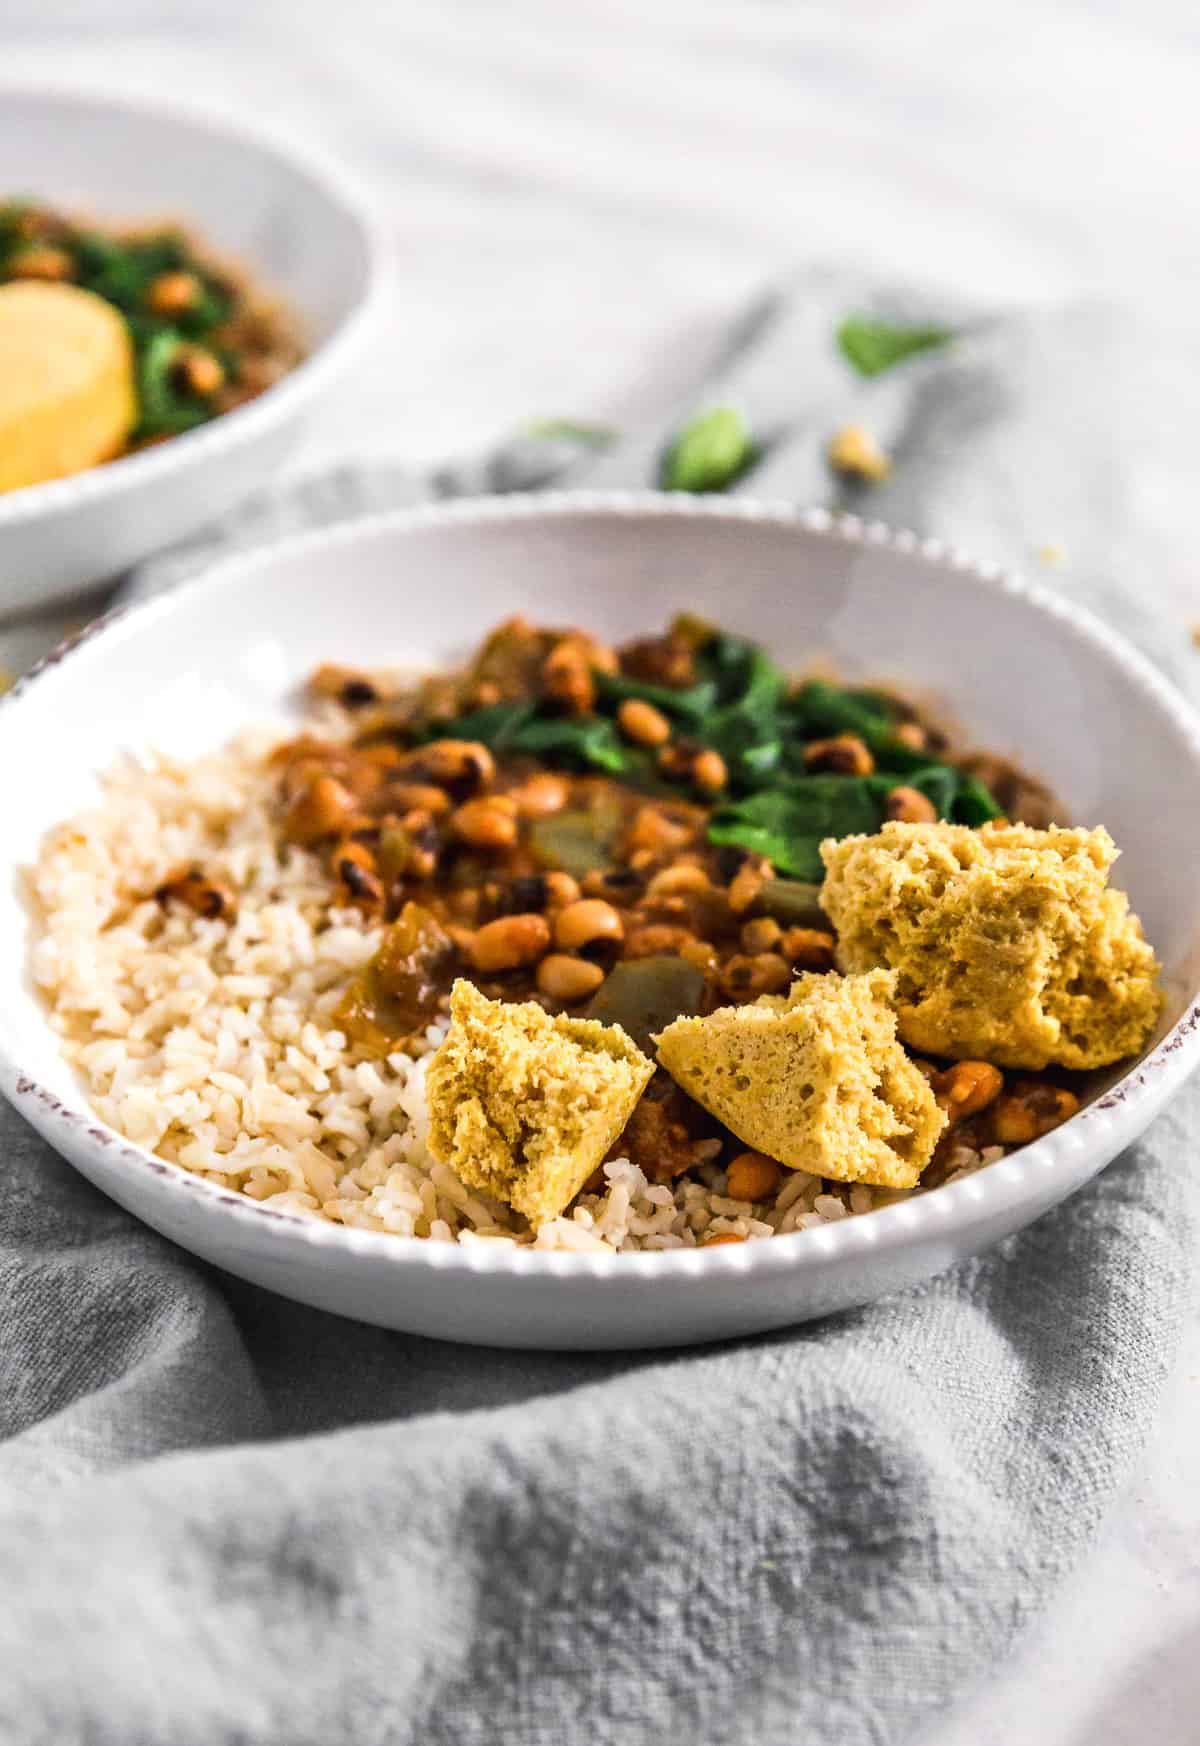 Instant Pot Cajun Black Eyed Pea Stew, Instant Pot, plant based, vegan, vegetarian, whole food plant based, gluten free, recipe, wfpb, healthy, healthy vegan, oil free, no refined sugar, no oil, refined sugar free, dairy free, stew, dinner, rice, Cajun, black eyed peas, beans